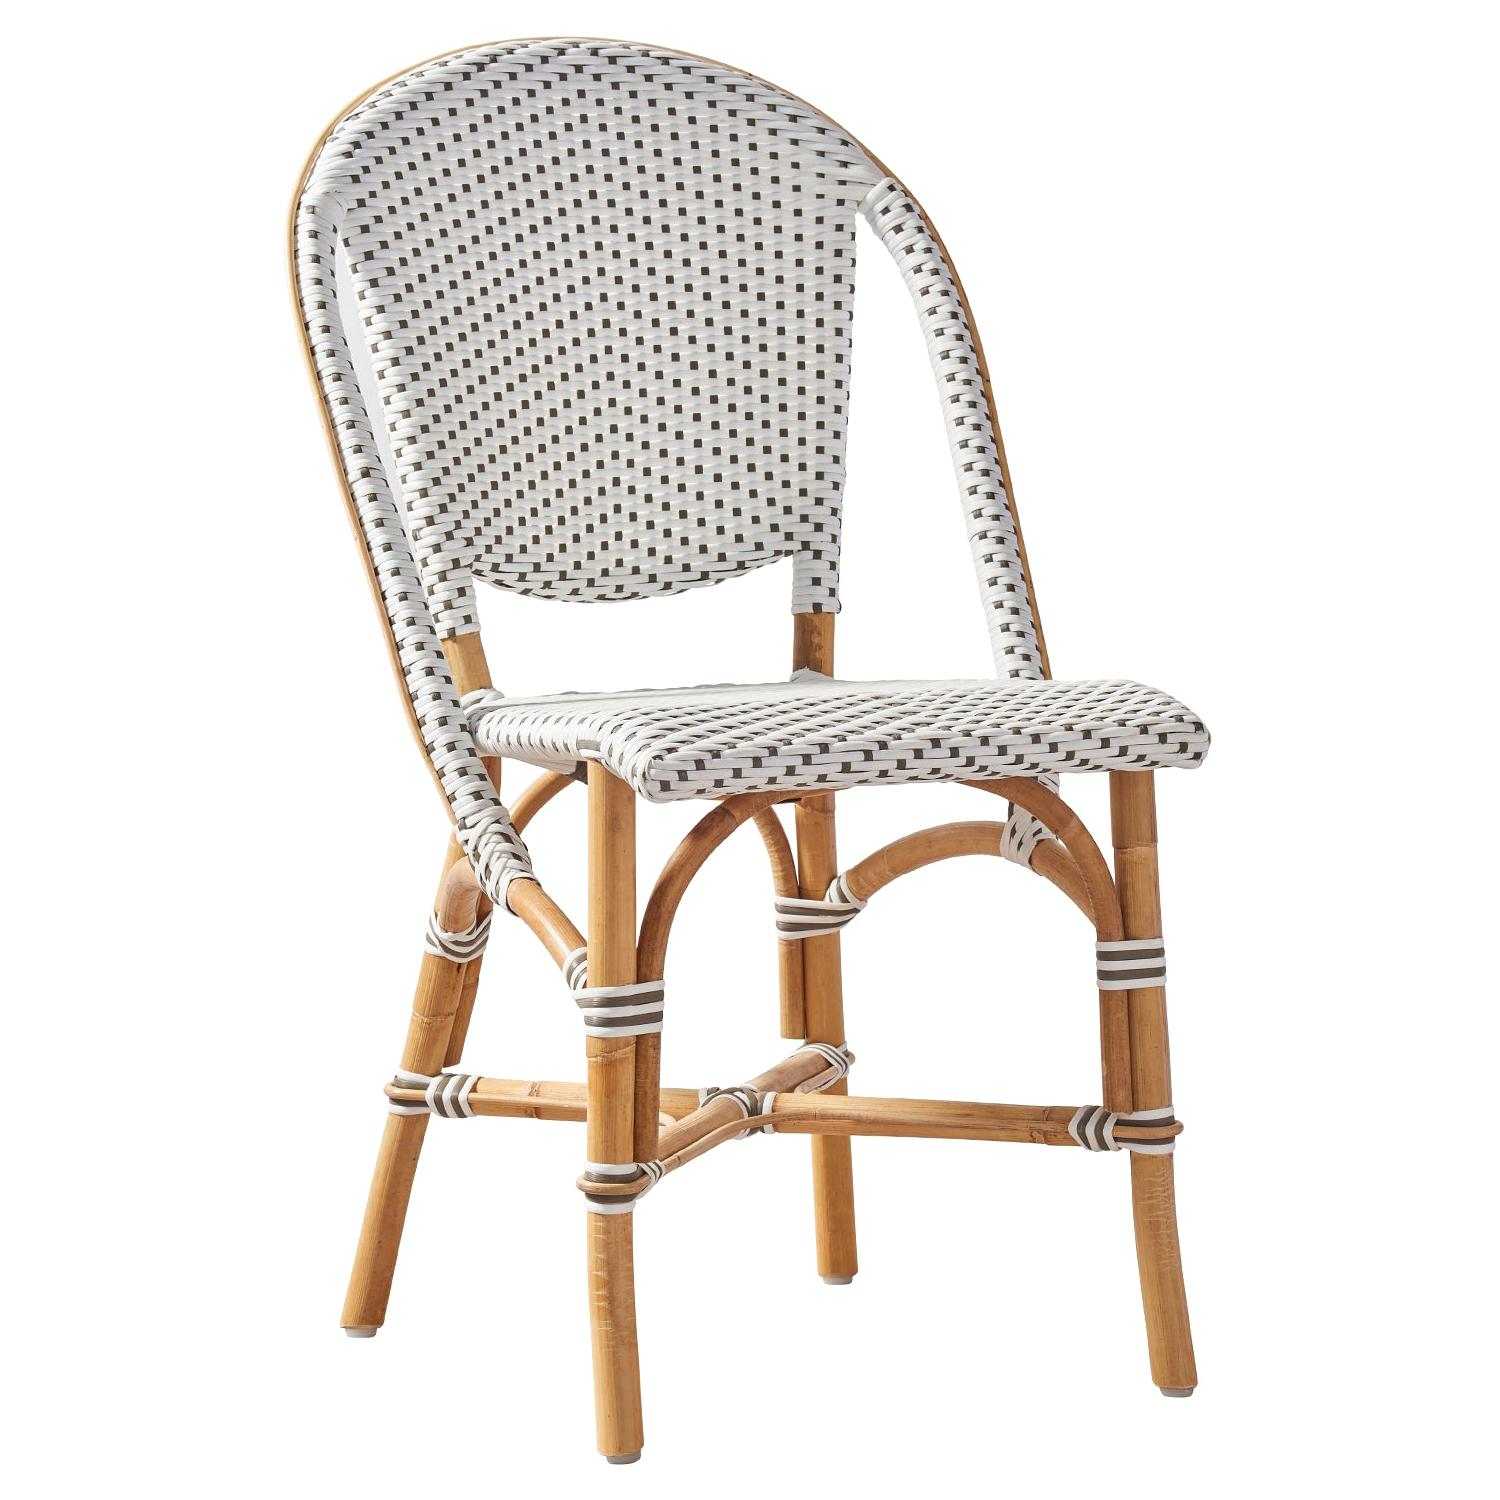 Sika Design Sofie Woven Rattan Bistro Side Chair in White with Cappuccino Dots